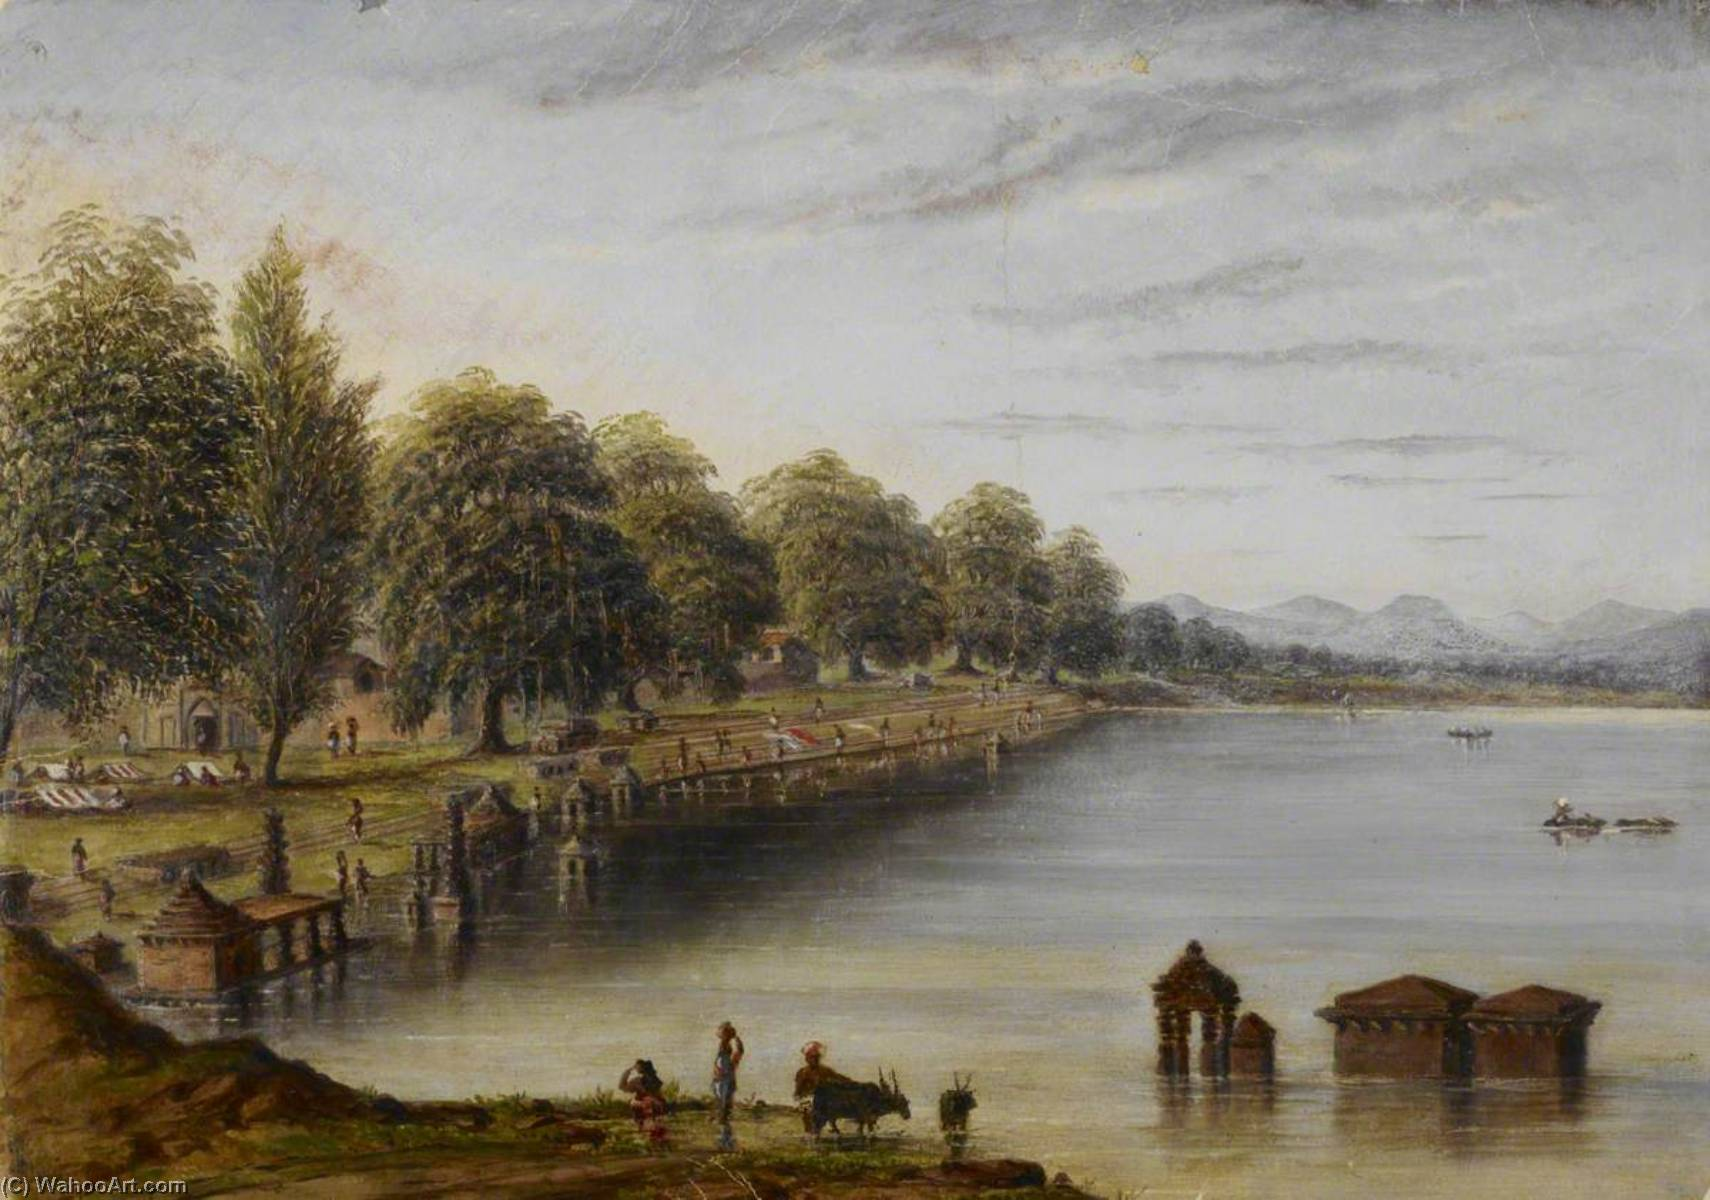 River and Ghats at Kolhapur, Oil by William Robert Houghton